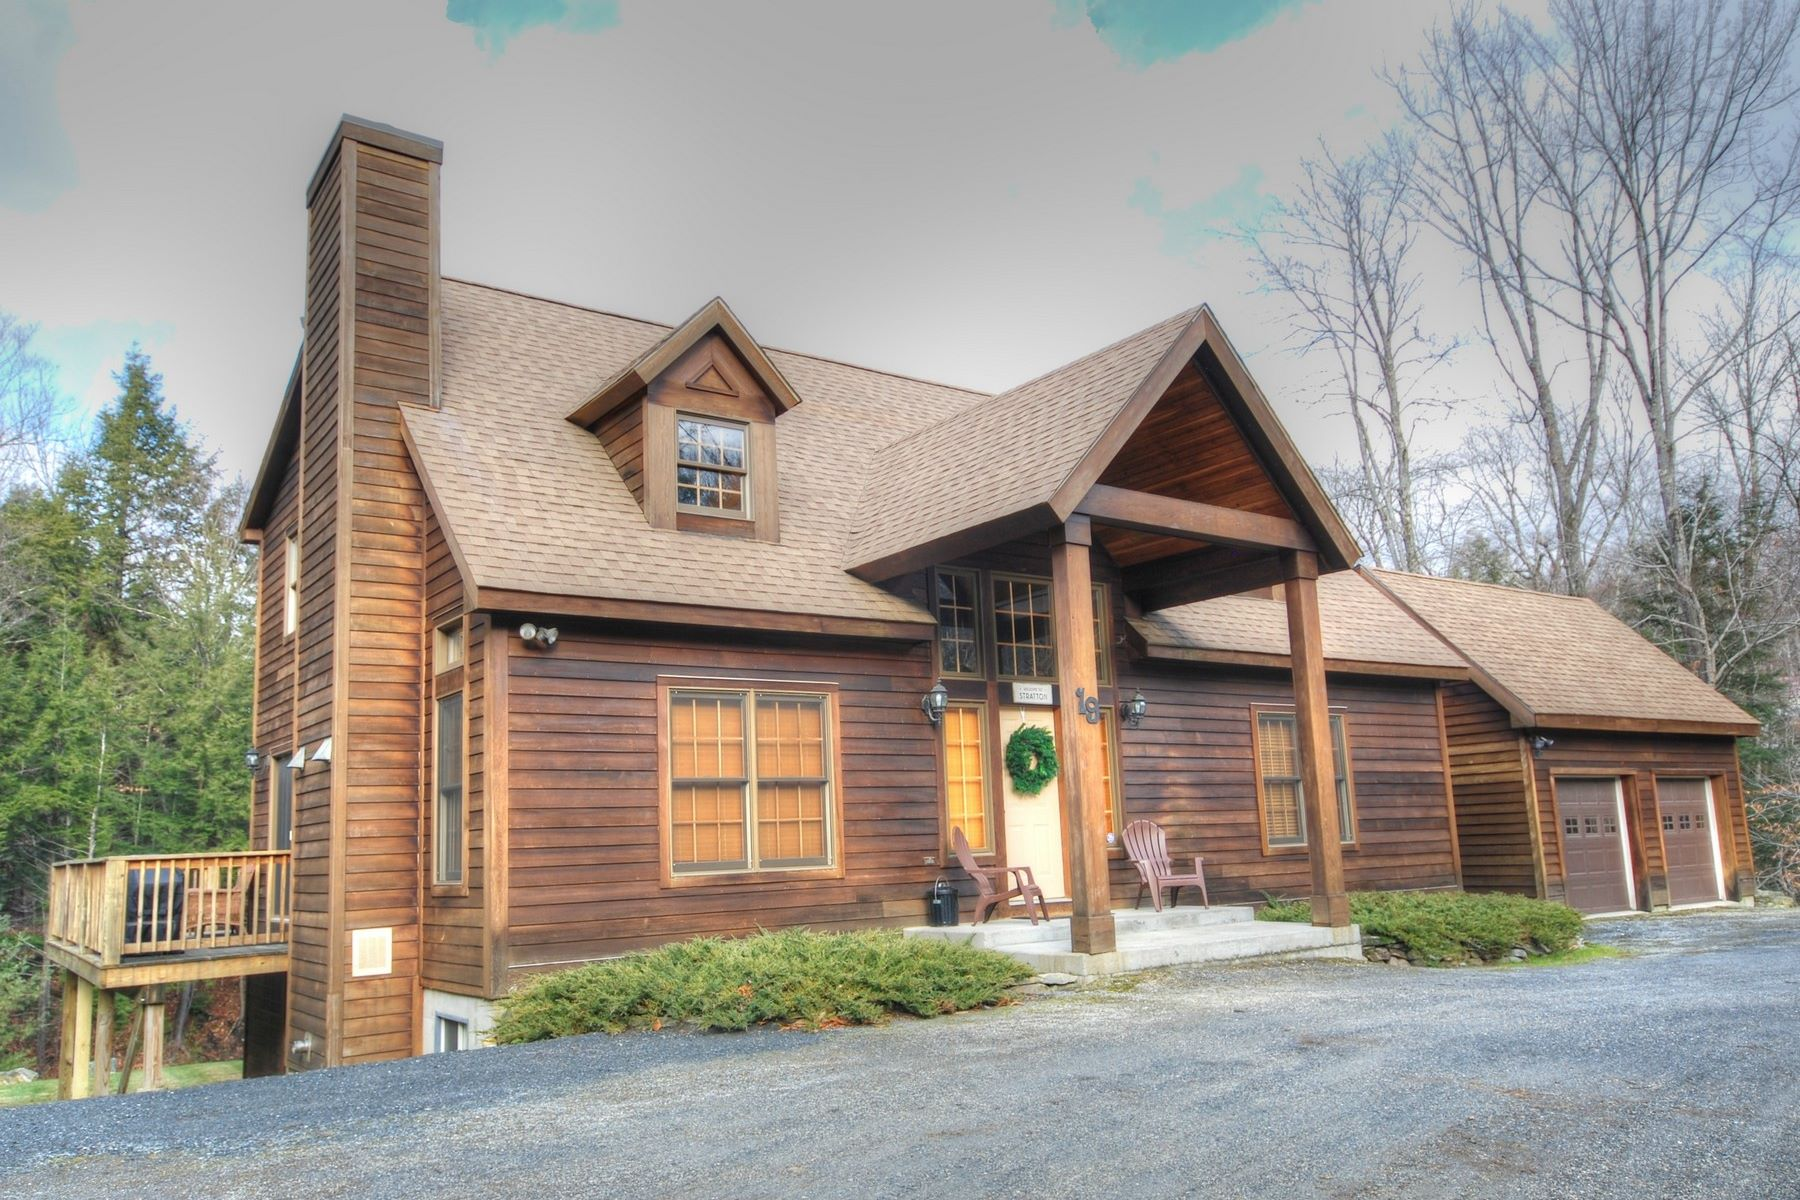 Single Family Home for Sale at 19 Todd Hill Road, Winhall 19 Todd Hill Rd Winhall, Vermont, 05340 United States